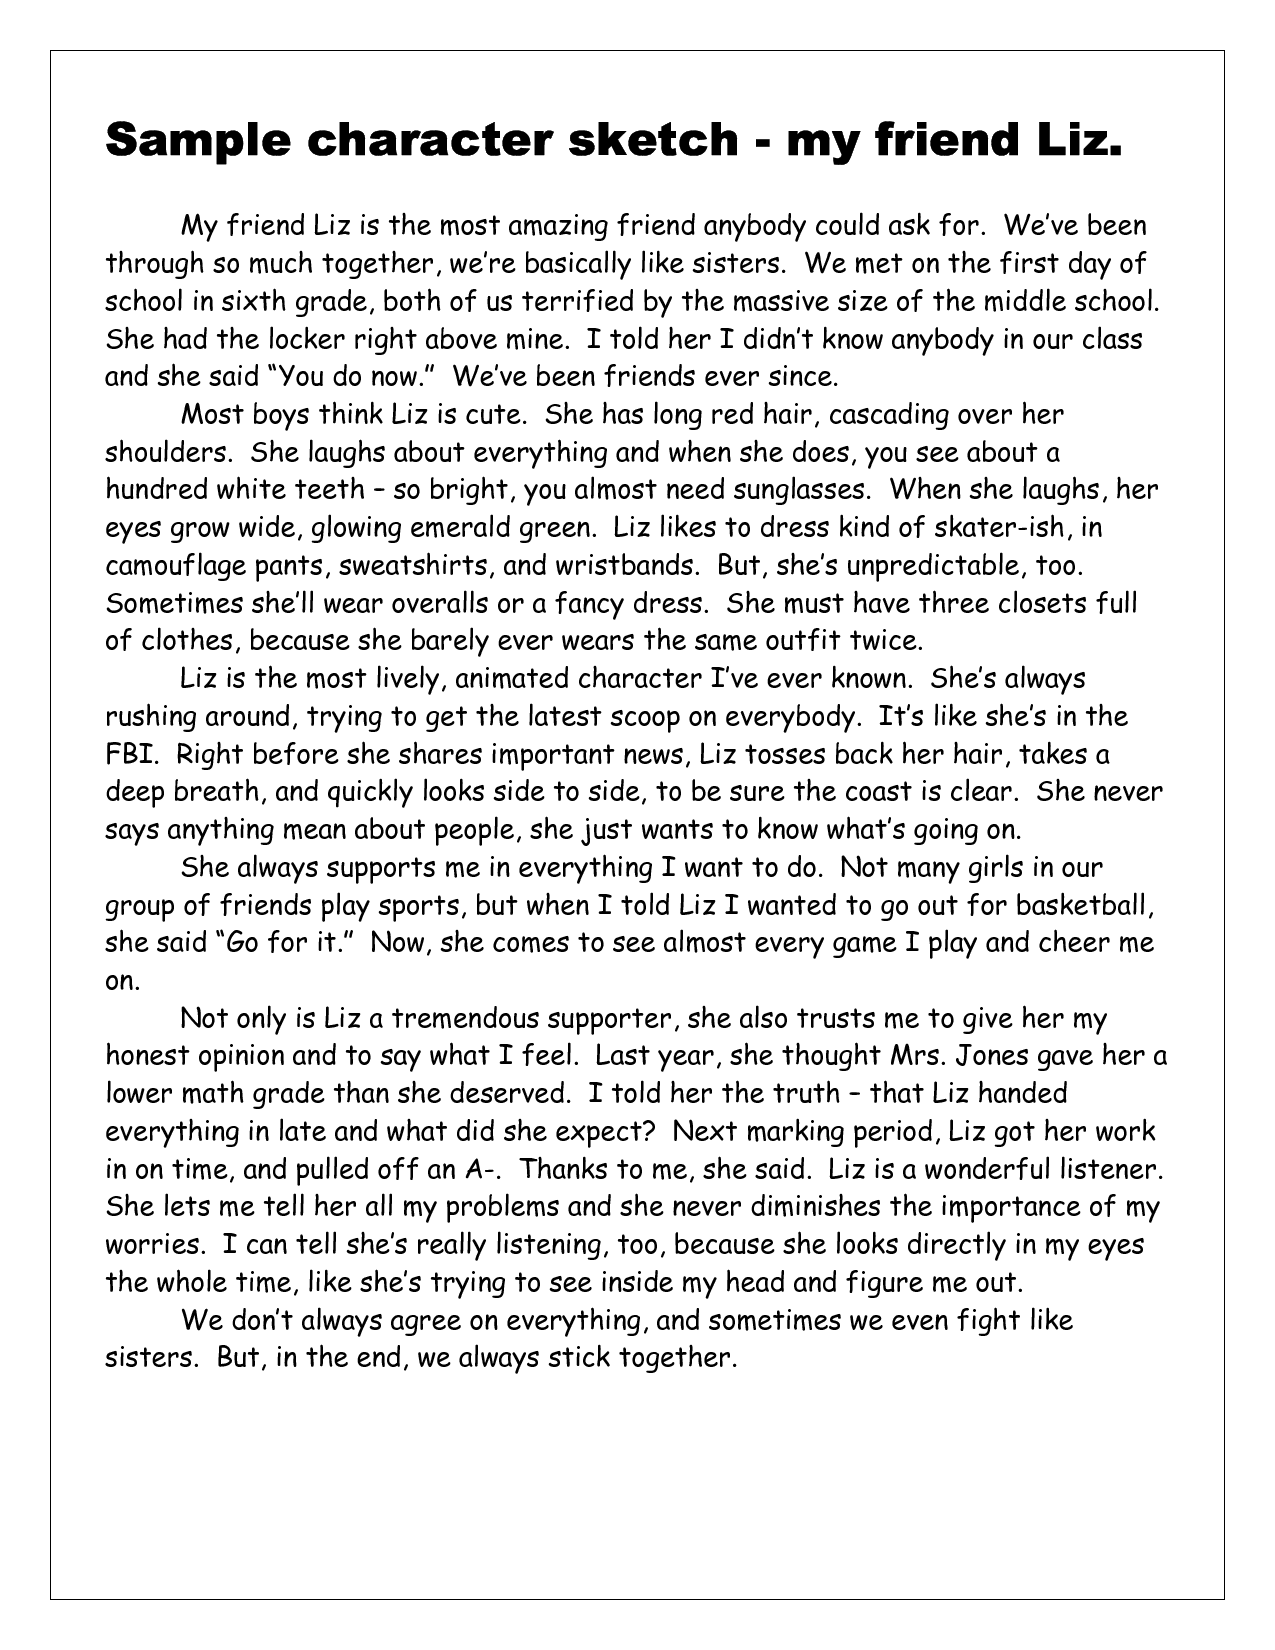 Essay help writing on best friend in english